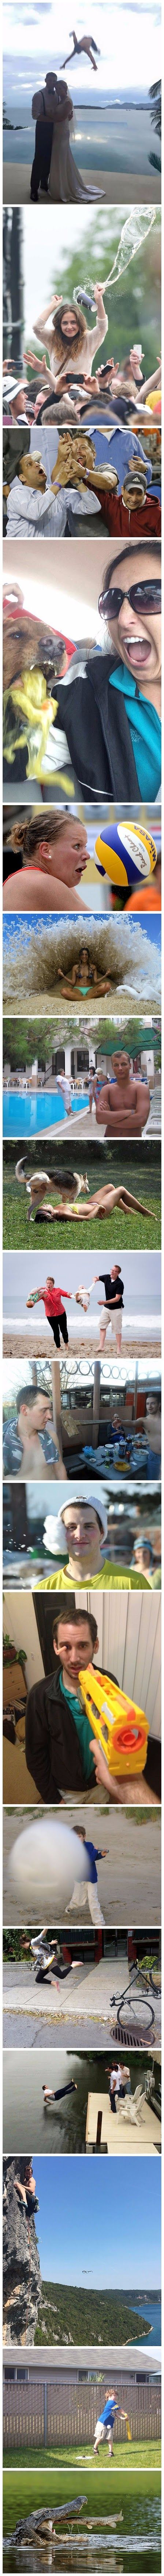 Funny Perfect Timing Photo Collection